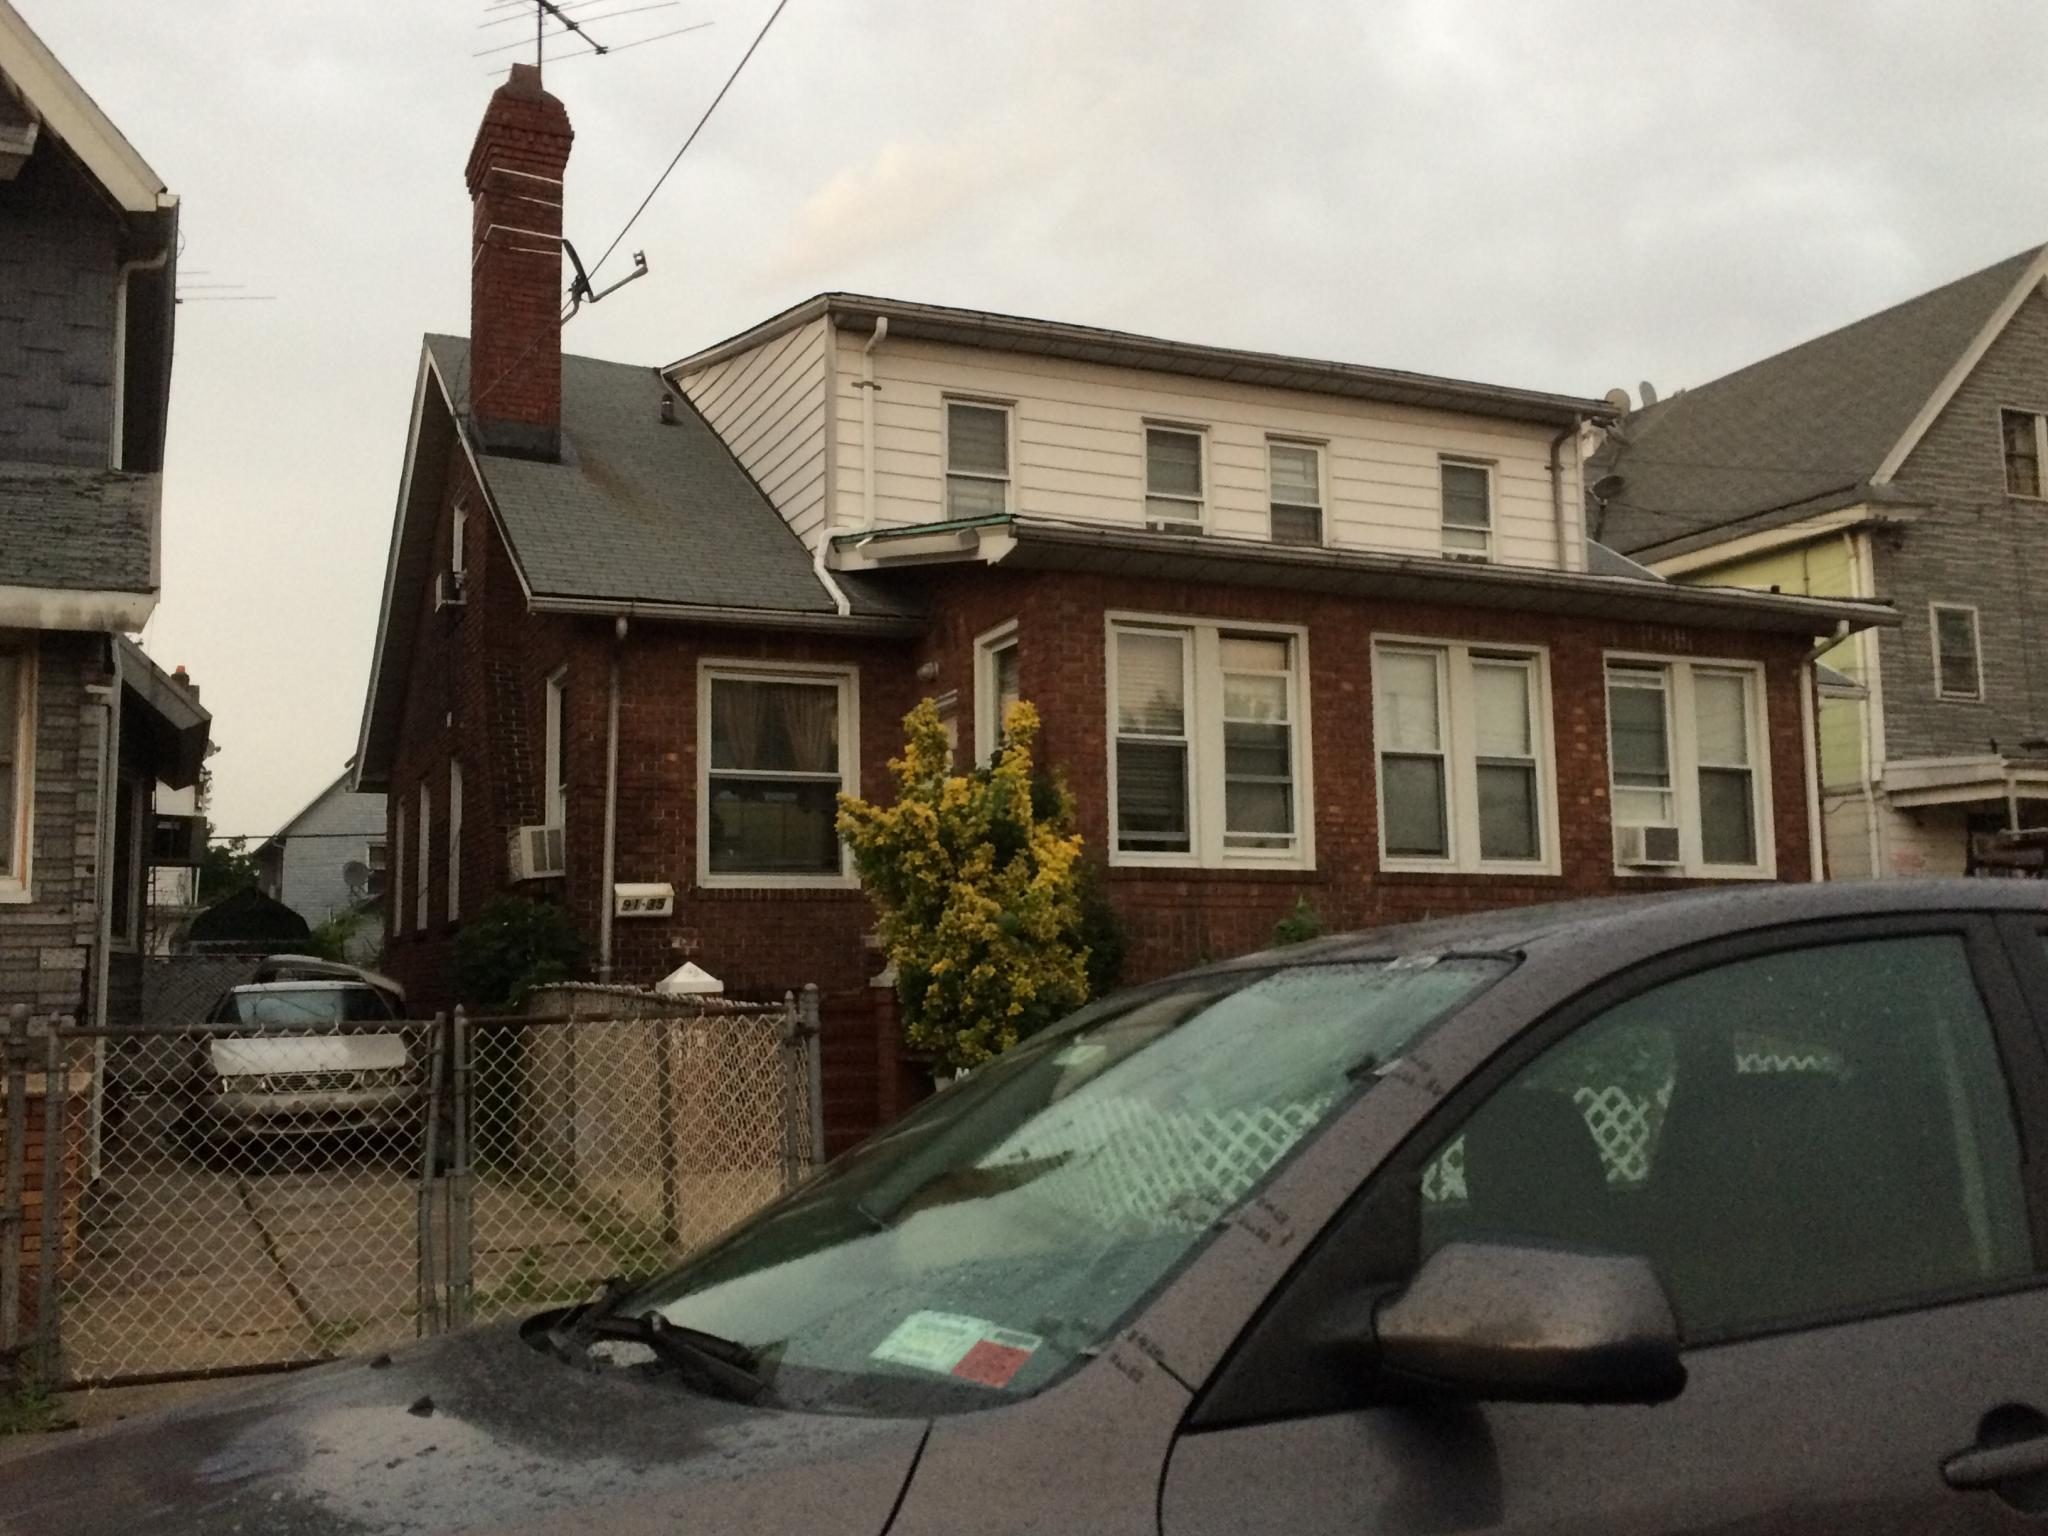 4 Family Brick House In Richmond Hl Queens NY Estimate and